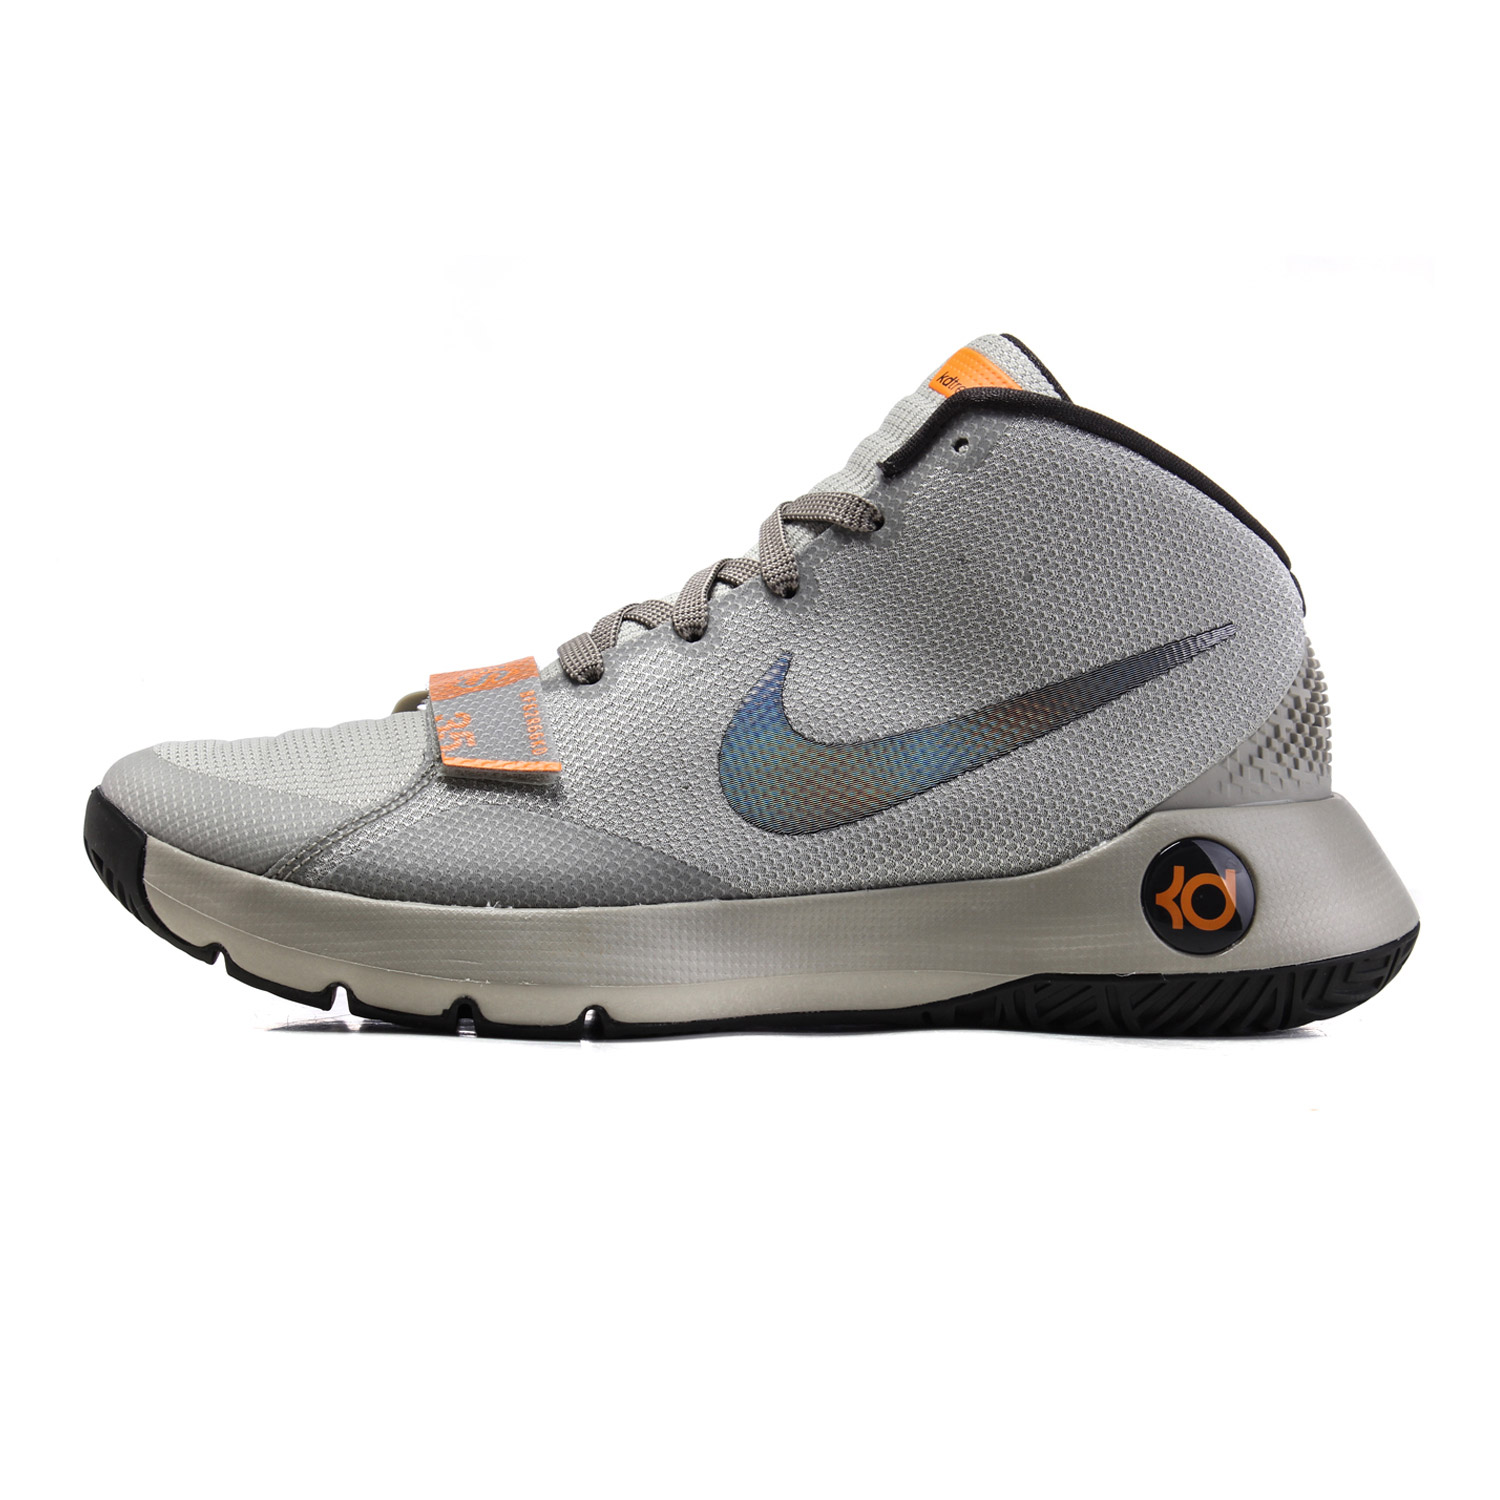 300faf163888 Get Quotations · Nike nike counter men s sports shoes basketball shoes to  help low damping 32kd spot 749378